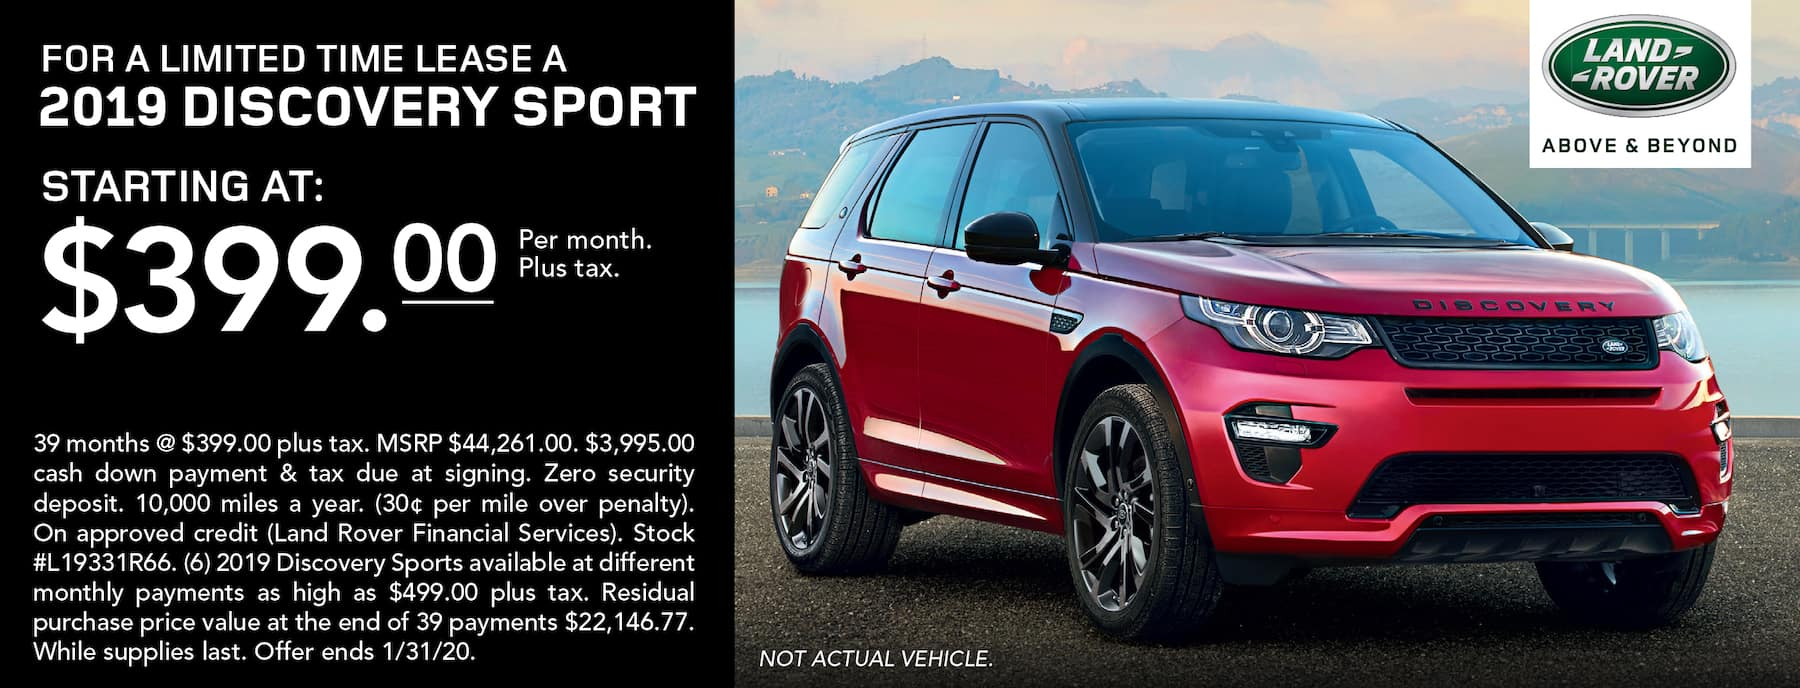 Discovery Sport Specials